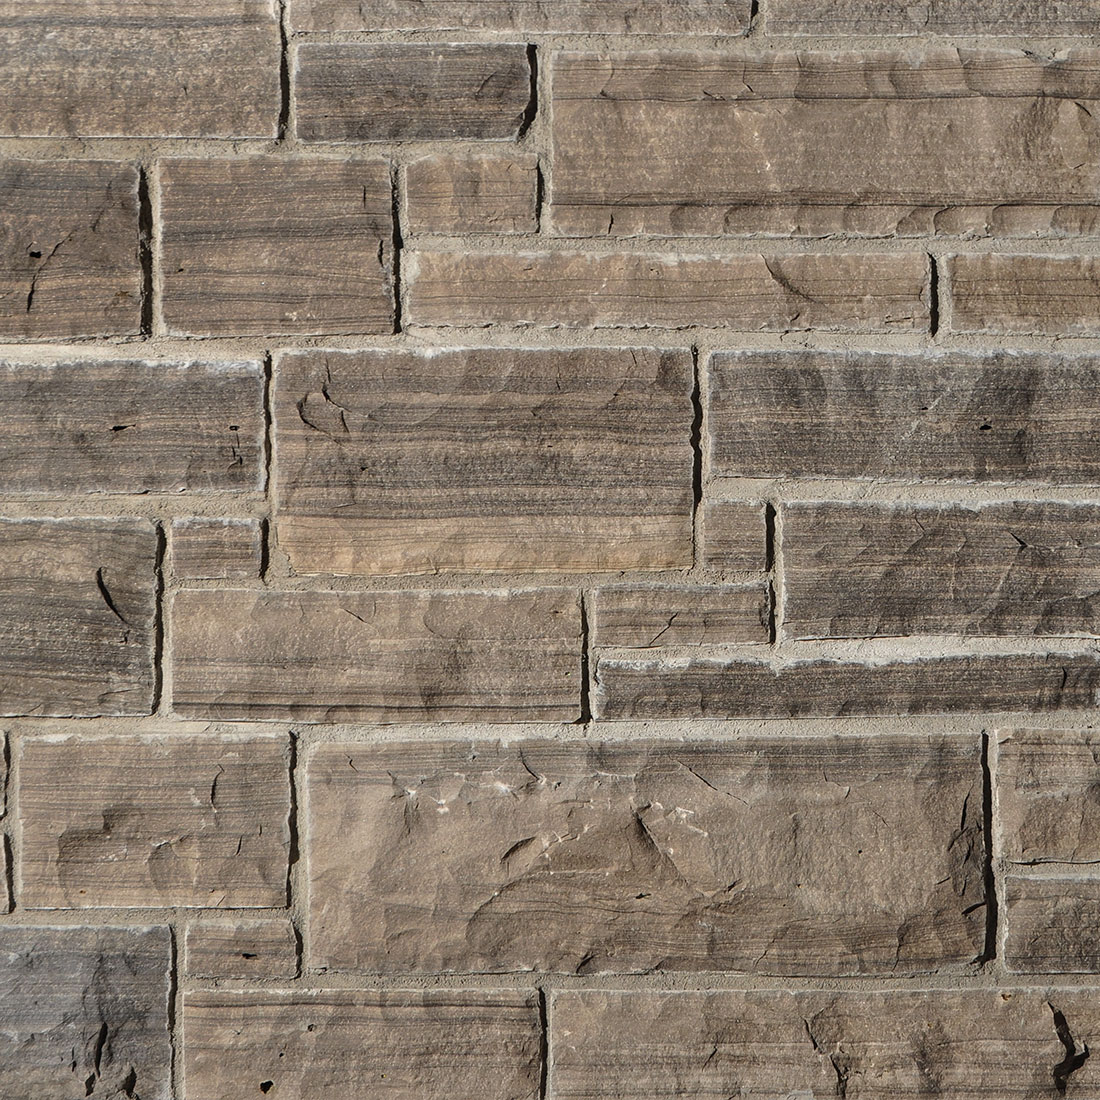 Natural Building Stones : Wiarton natural bed building stone coursing ledgerock